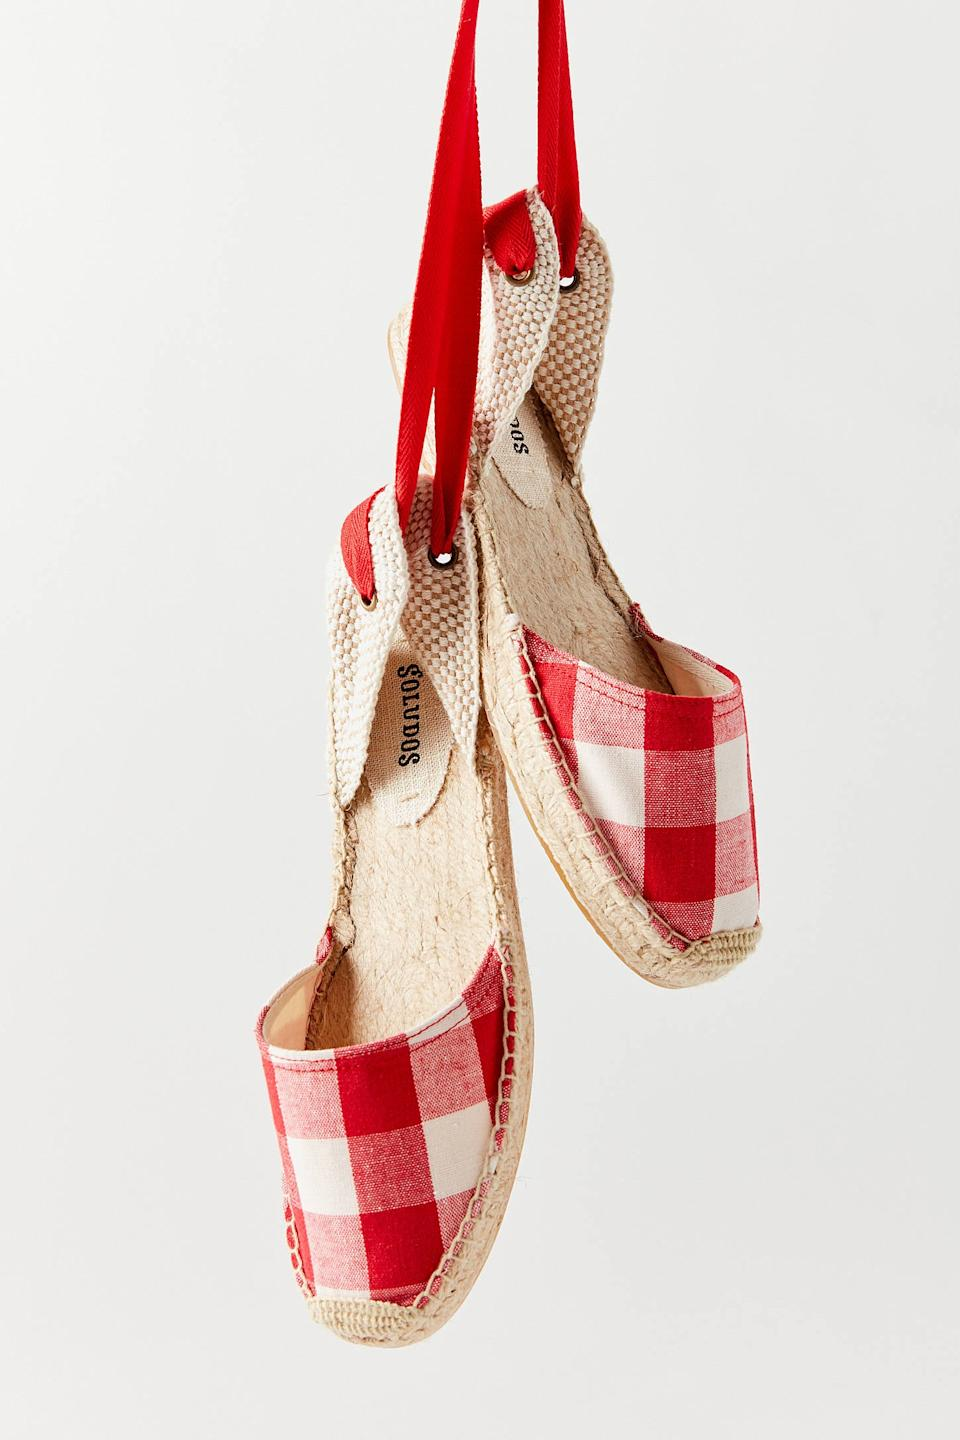 """<h2>Urban Outfitters</h2><br><strong>Deal: Up To 55% Off</strong><br>UO has its pulse on of-the-moment trends —and summer sandals are no exception. The retailer's virtual sale selection is rife with seasonal-footwear scores, including gems from <a href=""""https://www.urbanoutfitters.com/shop/soludos-linen-espadrille-tall-wedge-sandal"""" rel=""""nofollow noopener"""" target=""""_blank"""" data-ylk=""""slk:Soludos"""" class=""""link rapid-noclick-resp"""">Soludos</a> to <a href=""""https://www.urbanoutfitters.com/shop/camper-oruga-up-sandal"""" rel=""""nofollow noopener"""" target=""""_blank"""" data-ylk=""""slk:Camper"""" class=""""link rapid-noclick-resp"""">Camper</a> and <a href=""""https://www.urbanoutfitters.com/shop/rocket-dog-vega-webbing-sandal"""" rel=""""nofollow noopener"""" target=""""_blank"""" data-ylk=""""slk:Rocket Dog"""" class=""""link rapid-noclick-resp"""">Rocket Dog</a>.<br><br><em>Shop <strong><a href=""""https://www.urbanoutfitters.com/women-shoes-on-sale"""" rel=""""nofollow noopener"""" target=""""_blank"""" data-ylk=""""slk:Urban Outfitters"""" class=""""link rapid-noclick-resp"""">Urban Outfitters</a></strong></em><br><br><strong>Soludos</strong> Lauren Gingham Espadrille Sandal, $, available at <a href=""""https://go.skimresources.com/?id=30283X879131&url=https%3A%2F%2Fwww.urbanoutfitters.com%2Fshop%2Fsoludos-lauren-gingham-espadrille-sandal"""" rel=""""nofollow noopener"""" target=""""_blank"""" data-ylk=""""slk:Urban Outfitters"""" class=""""link rapid-noclick-resp"""">Urban Outfitters</a>"""